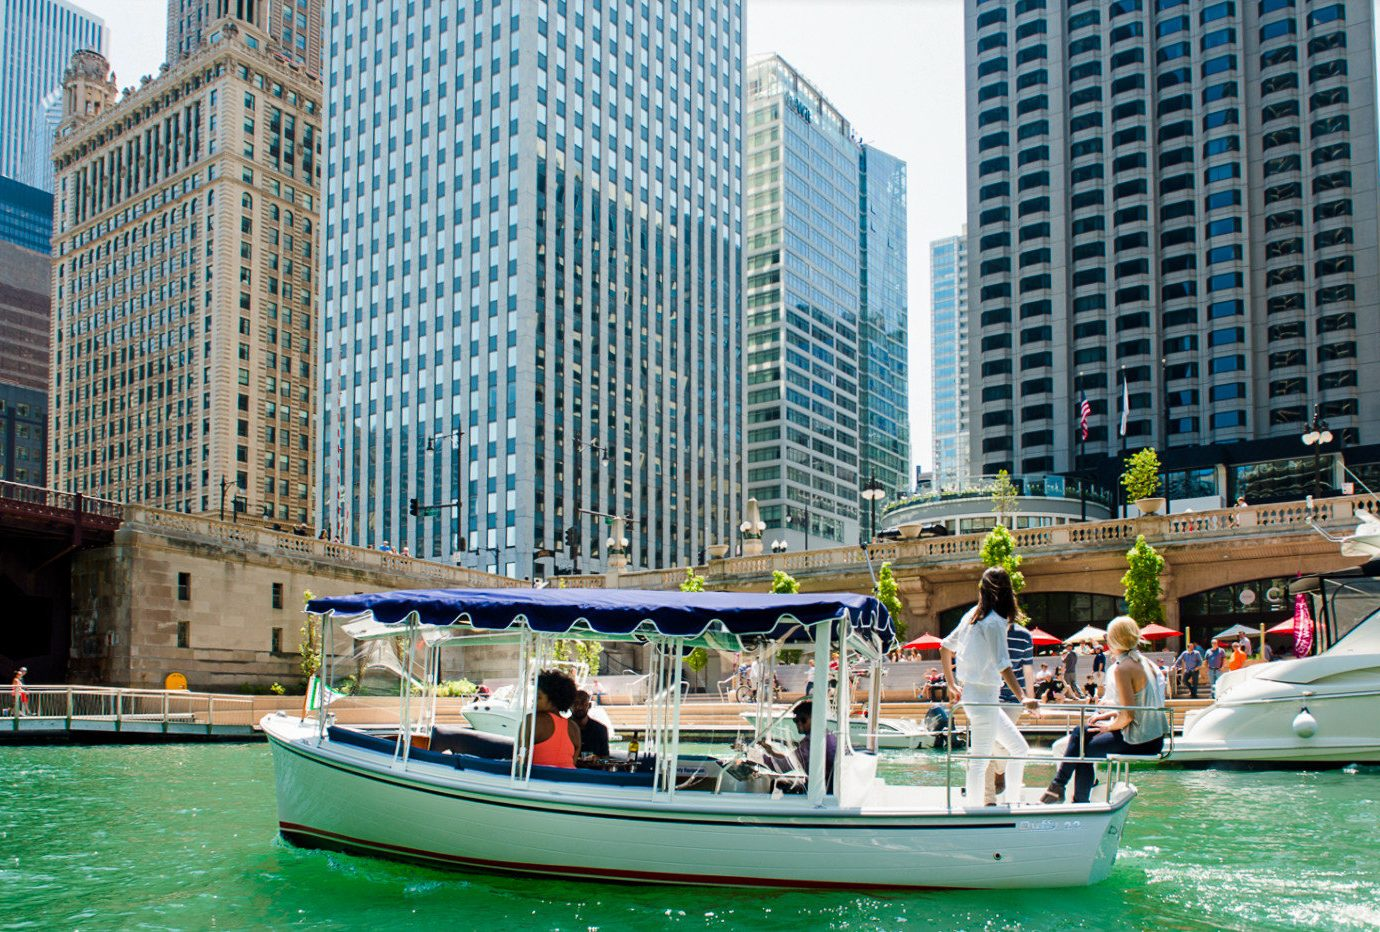 Trip Ideas water Boat building outdoor waterway water transportation metropolitan area City marina urban area Downtown mixed use tower block cityscape condominium skyline skyscraper River watercraft Harbor metropolis channel vehicle sky dock boating